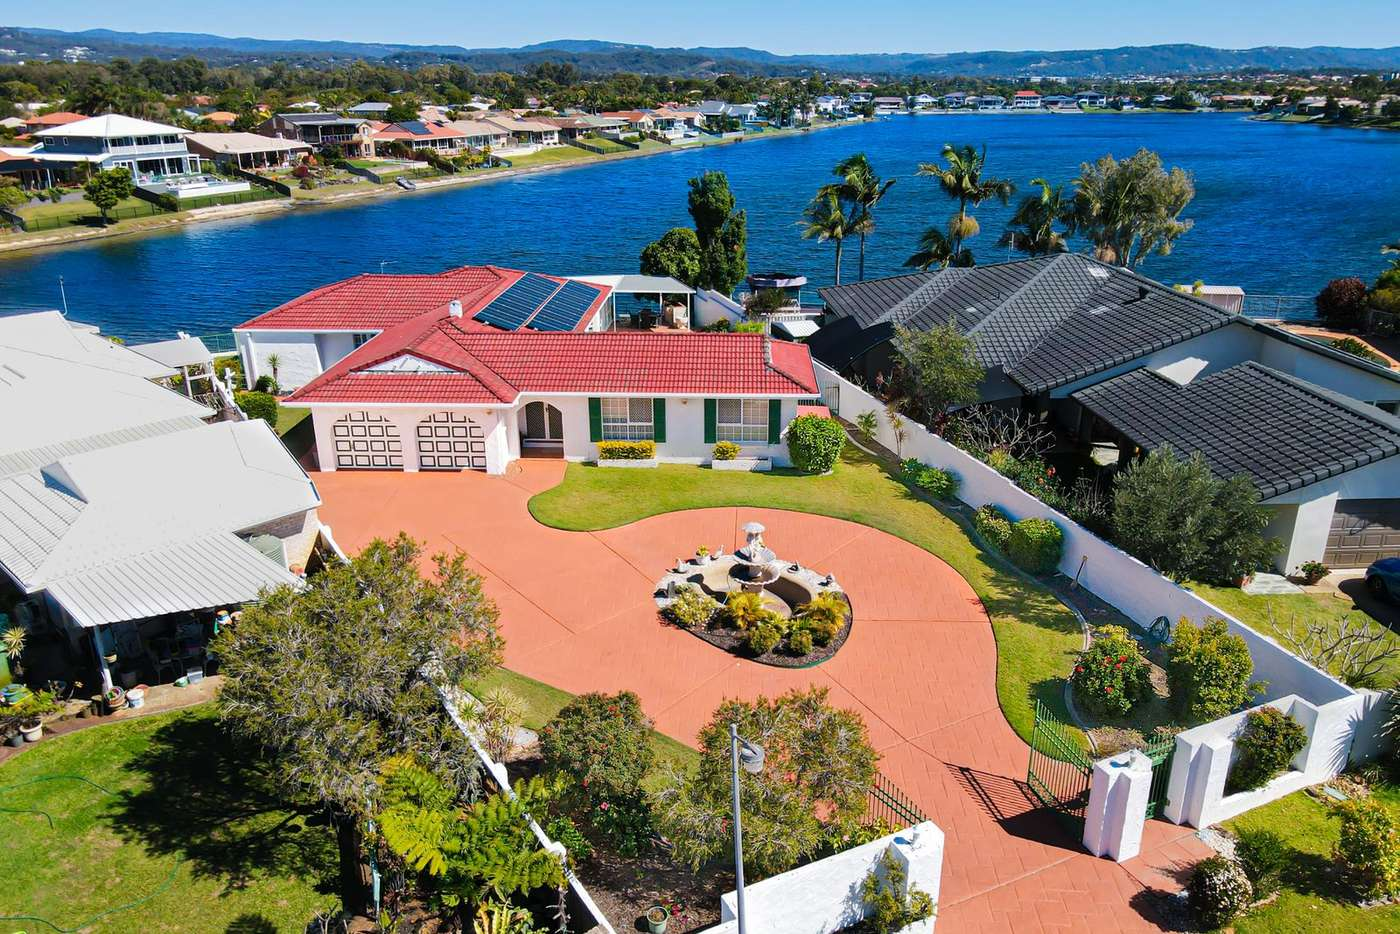 Main view of Homely house listing, 43 Pintail Crescent, Burleigh Waters QLD 4220